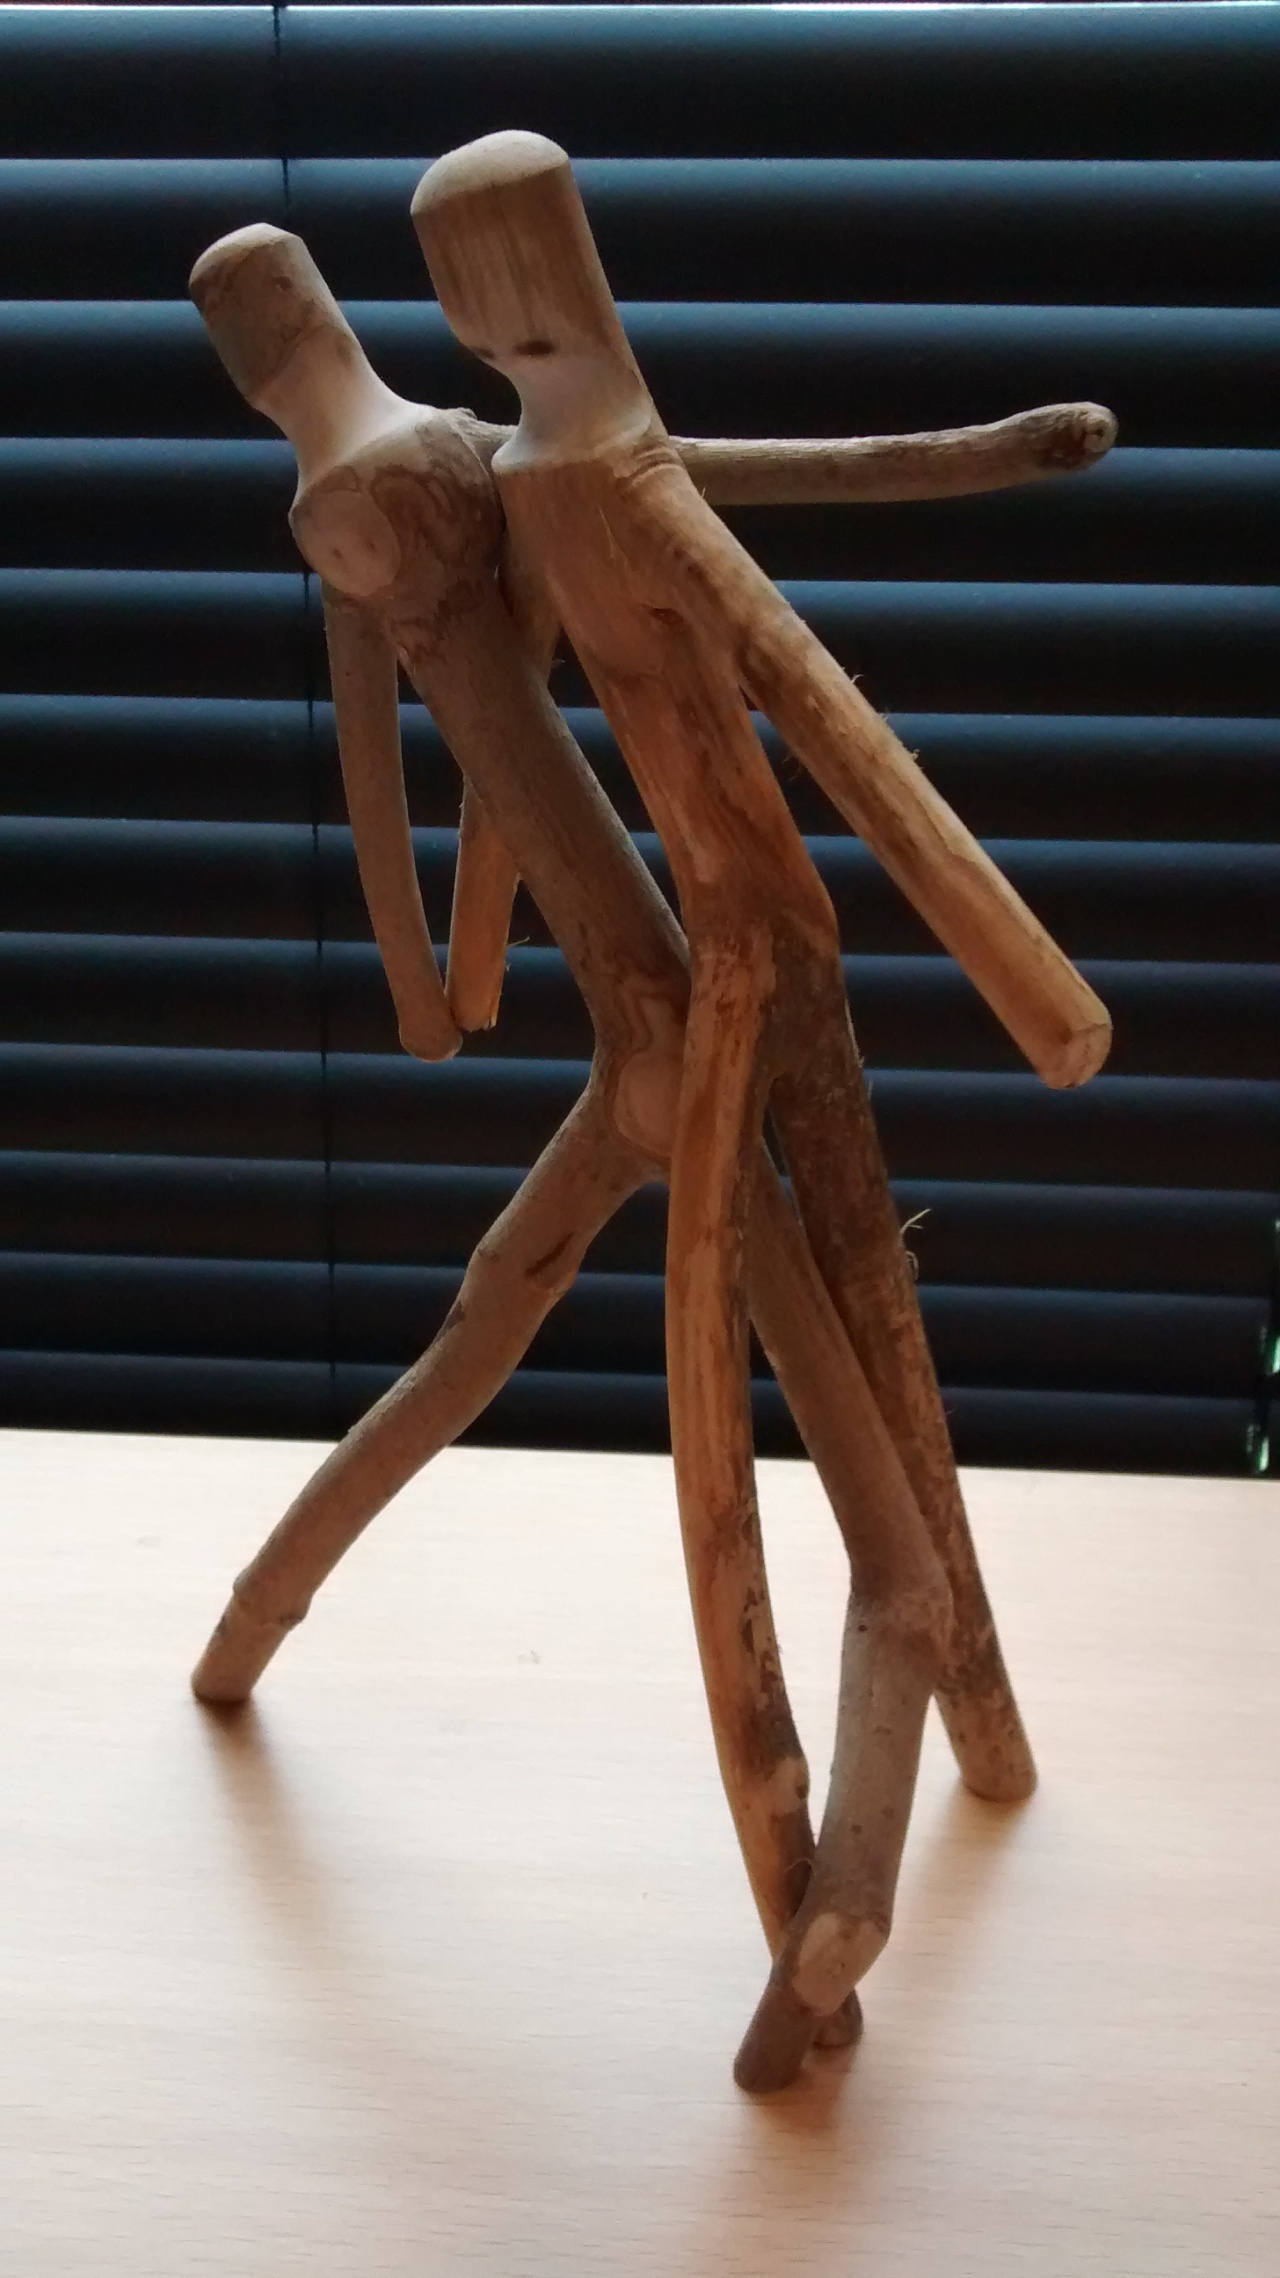 Wood You Like to Dance? Art Asked. Stick Sculpture #8915